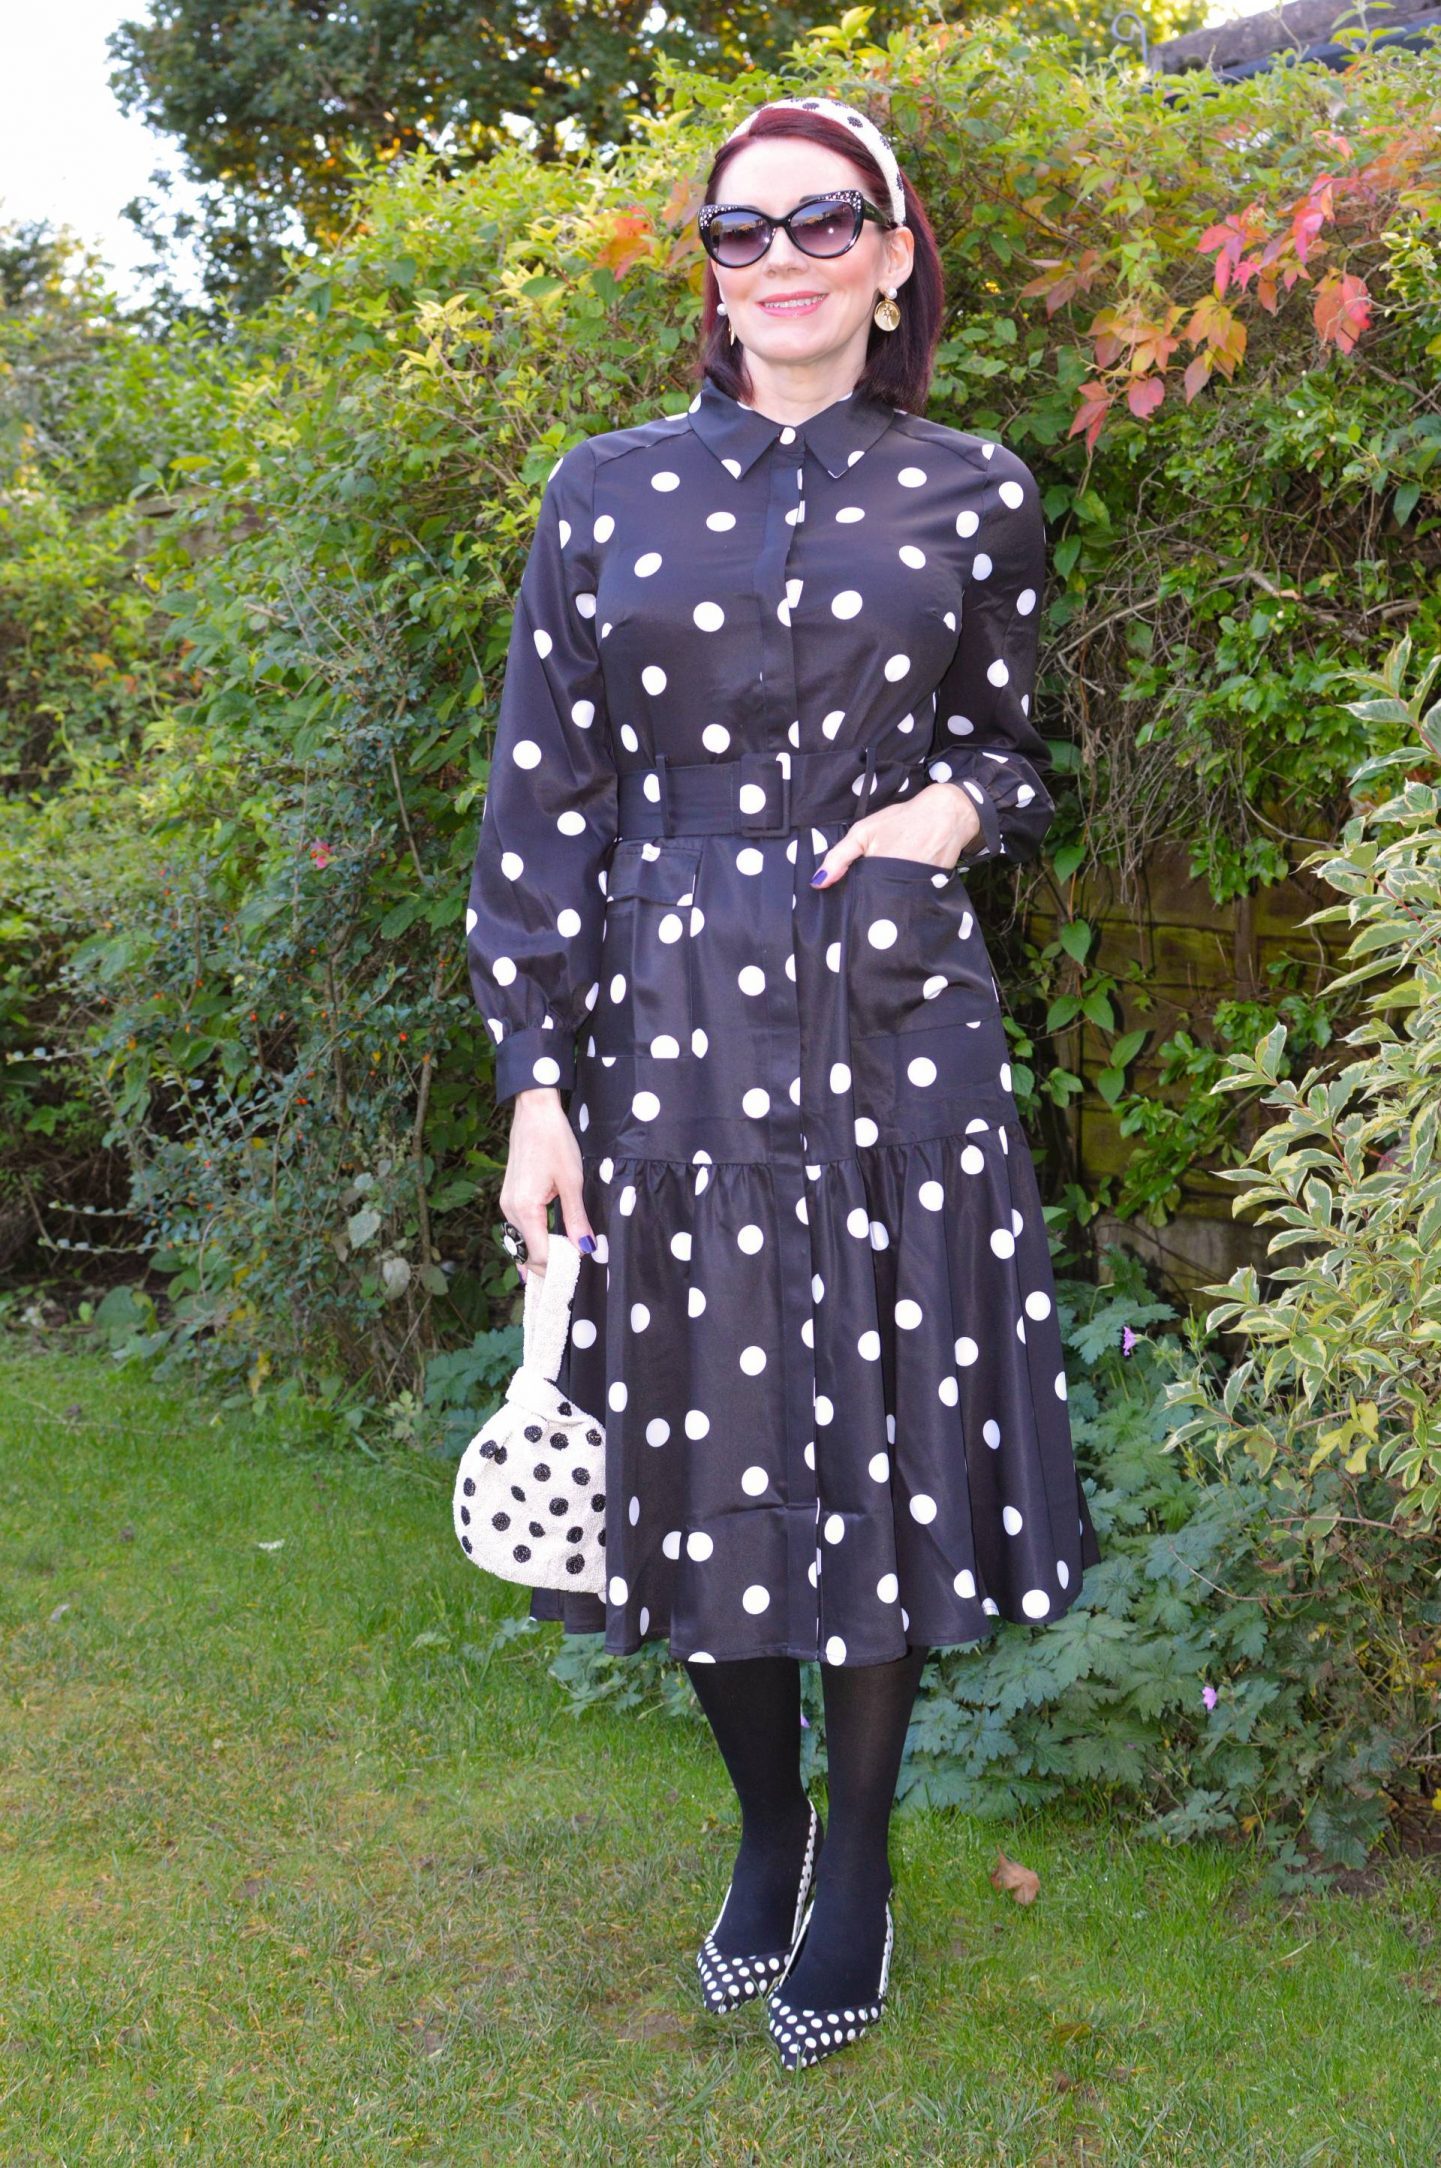 Head to Toe Polka Dots, Coast polka dot belted dress, Accessorize beaded polka dot bag, Accessorize beaded polka dot headband, Marks & Spencer polka dot slingback shoes